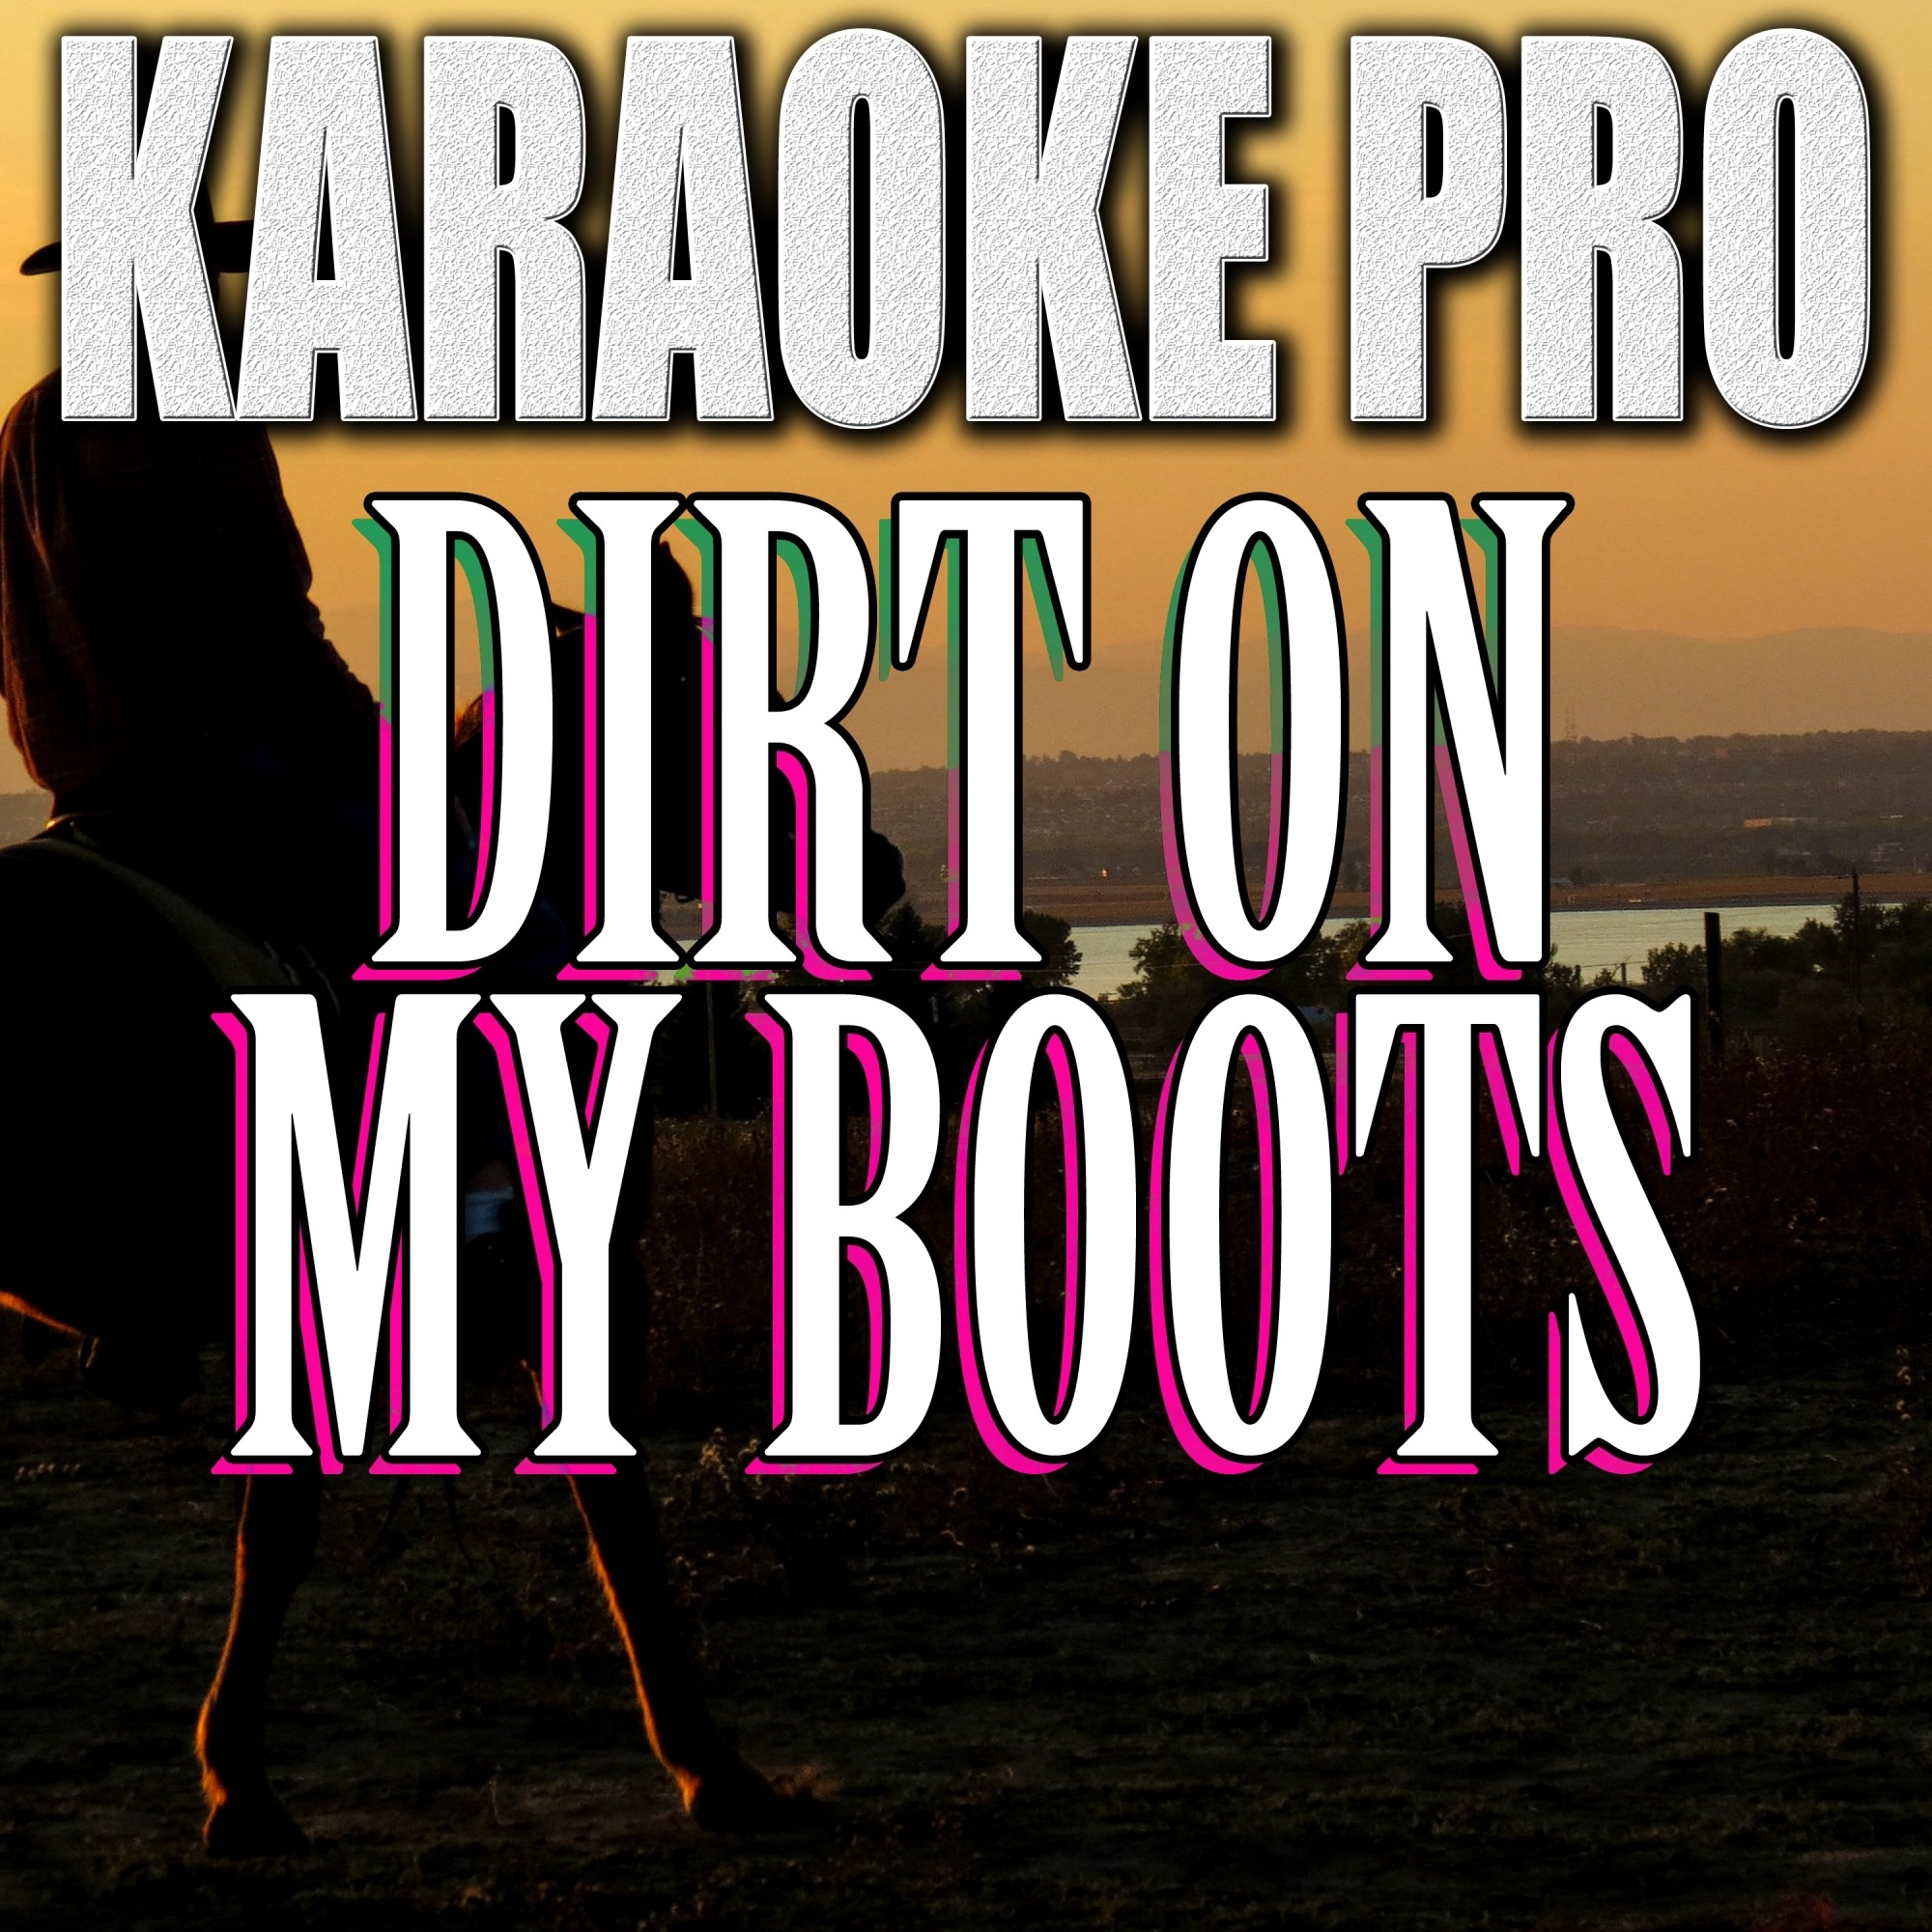 Dirt On My Boots (Originally Performed by Jon Pardi) [Instrumental Version]